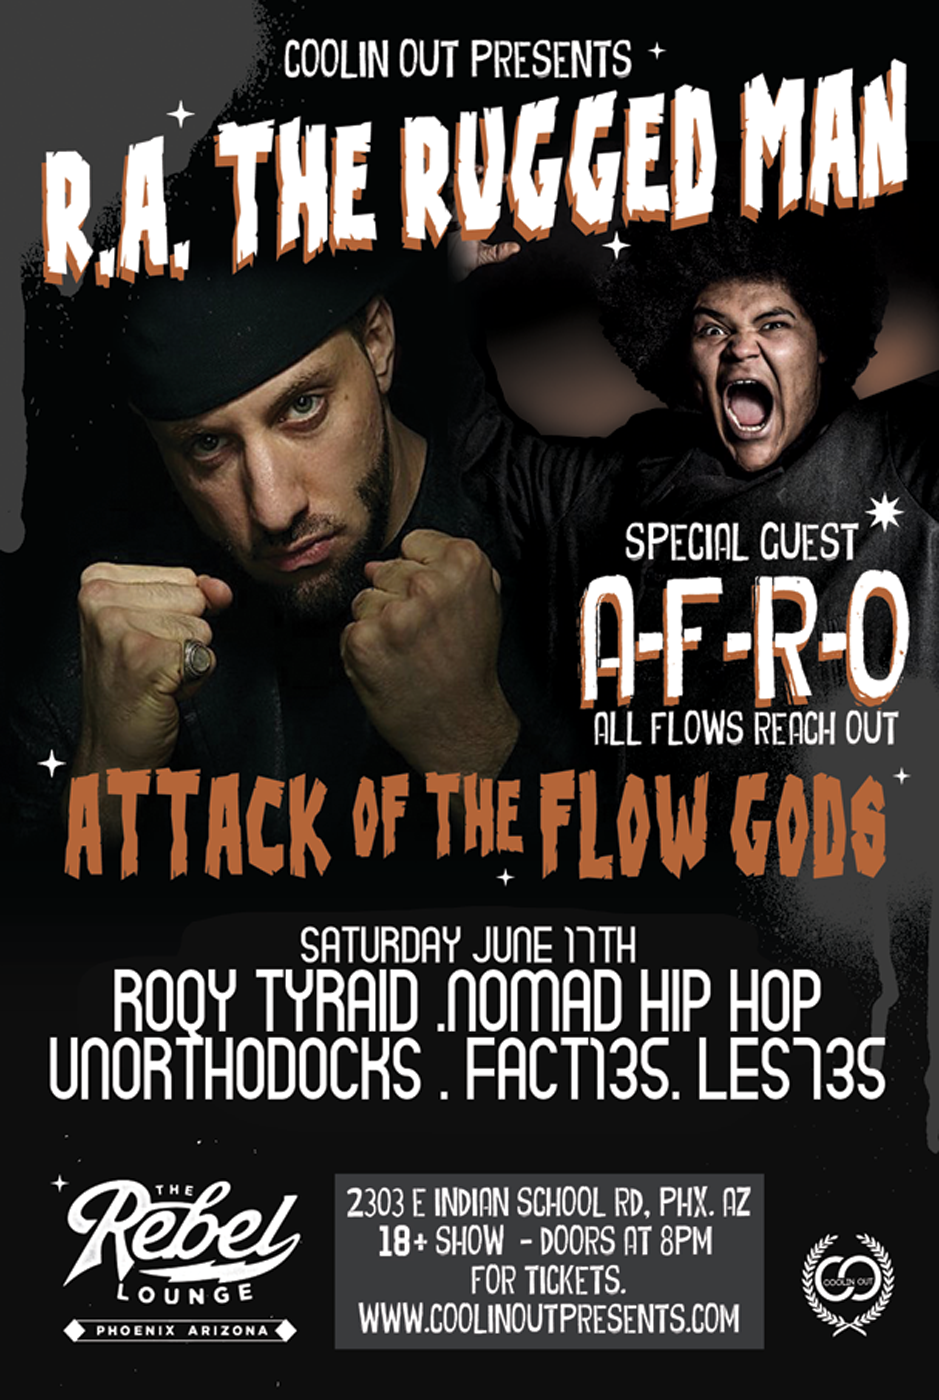 R.A. the Rugged Man and A-F-R-O